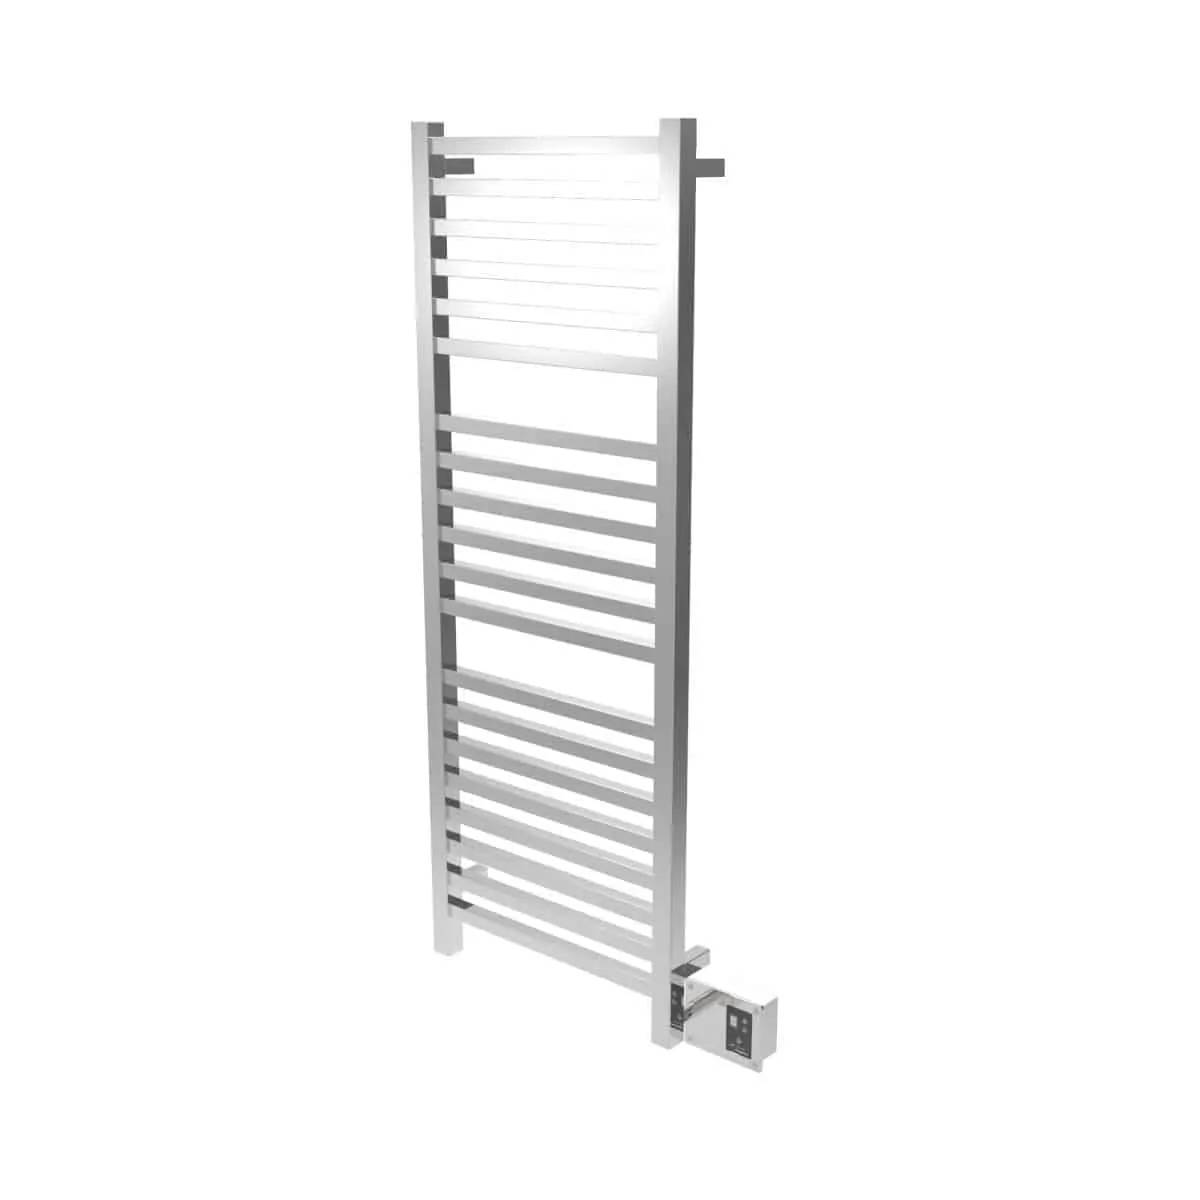 Amba Q2054P Quadro Heated Towel Rack - Polished